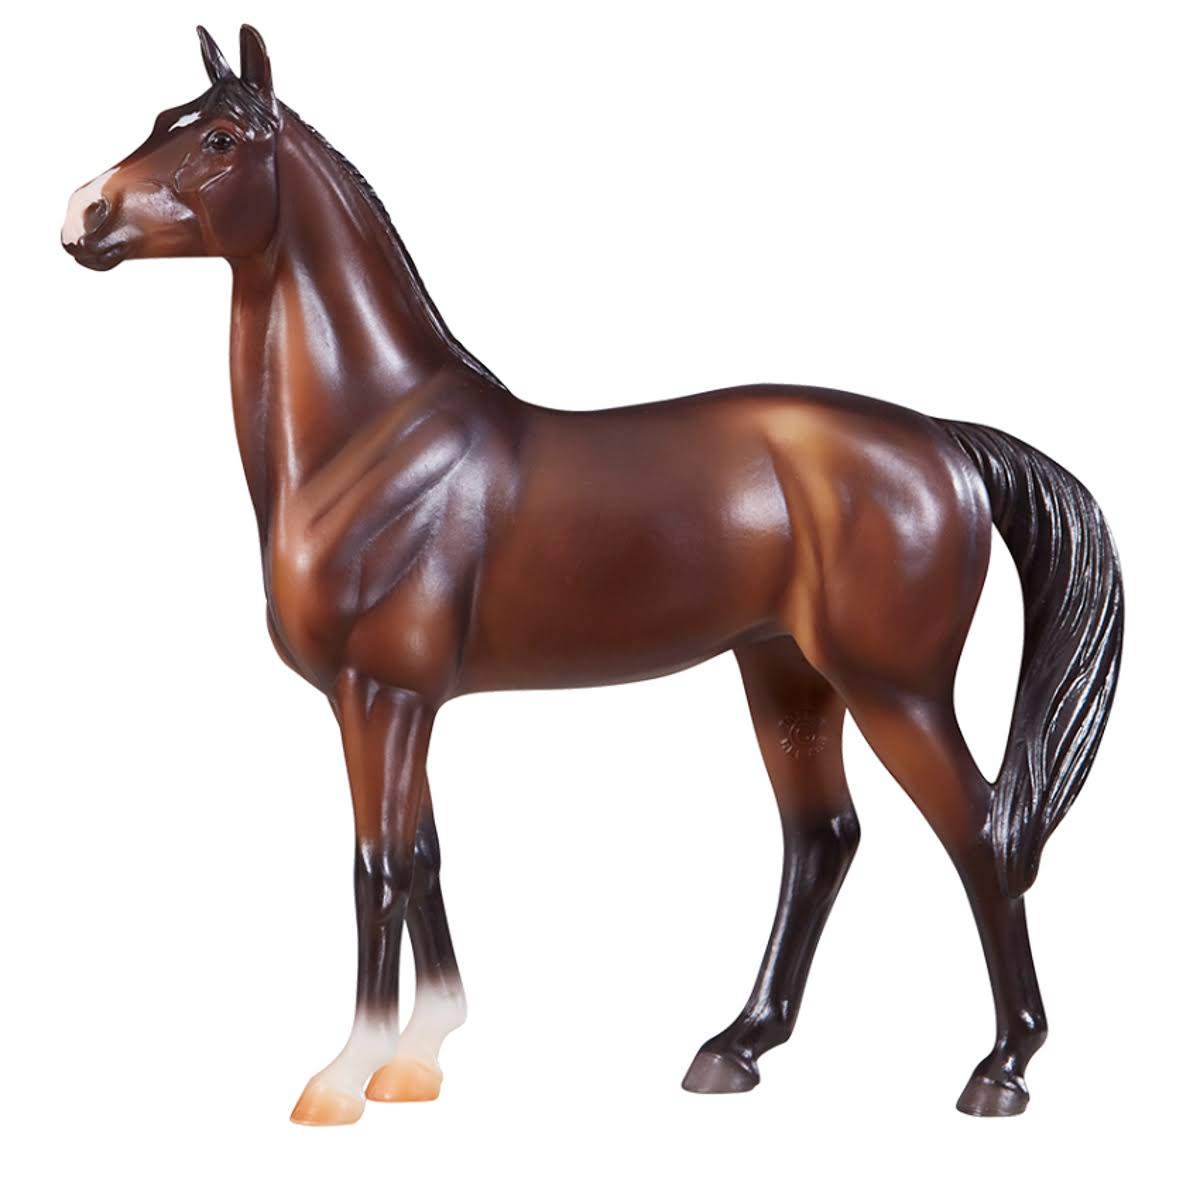 Breyer Mahogany Bay Thoroughbred Horse